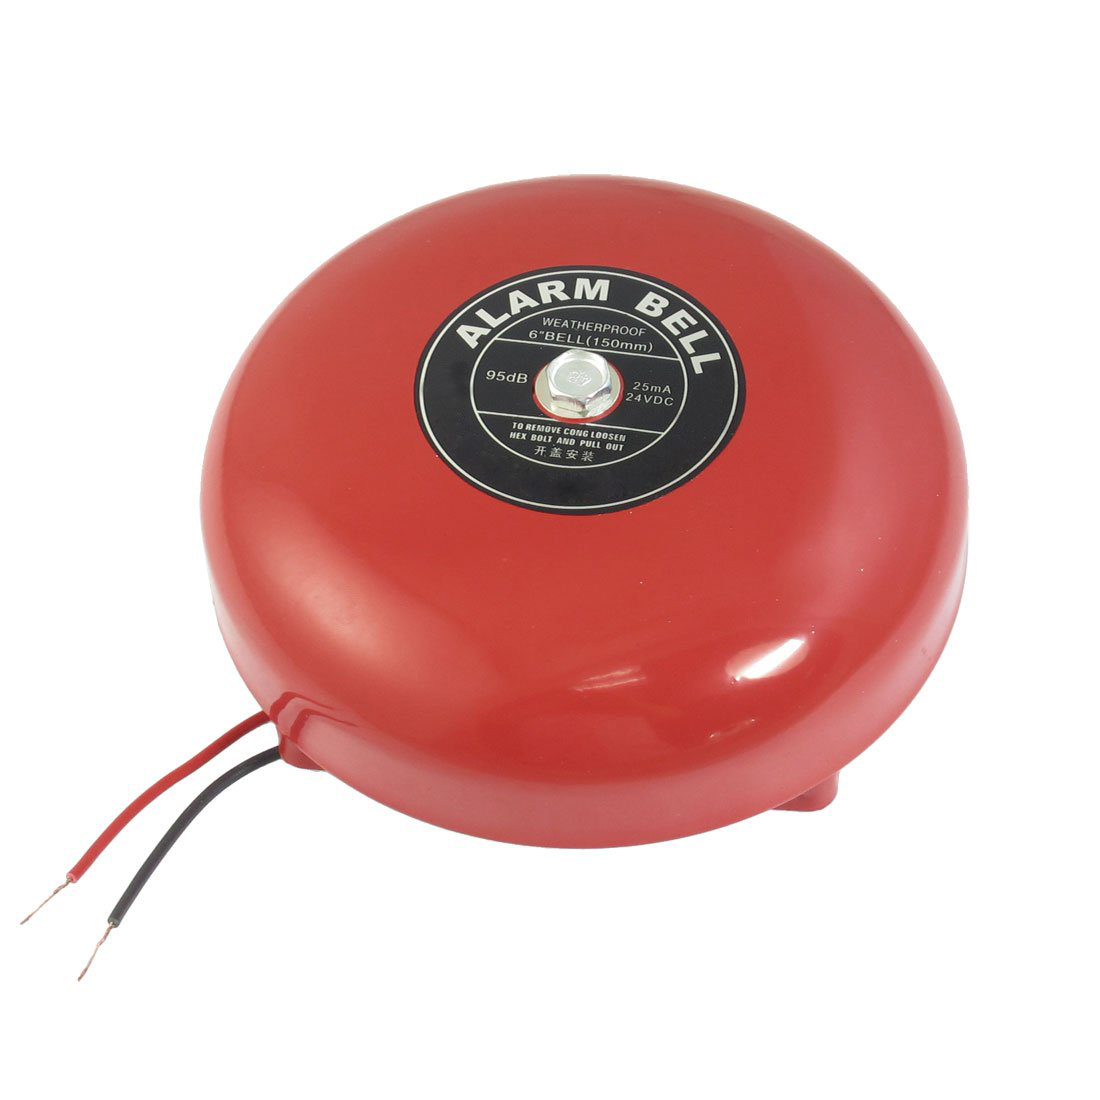 "MOOL DC 24V 25mA 95db 150mm 6"" Diameter Metal Electric Round Alarm Bell Red"